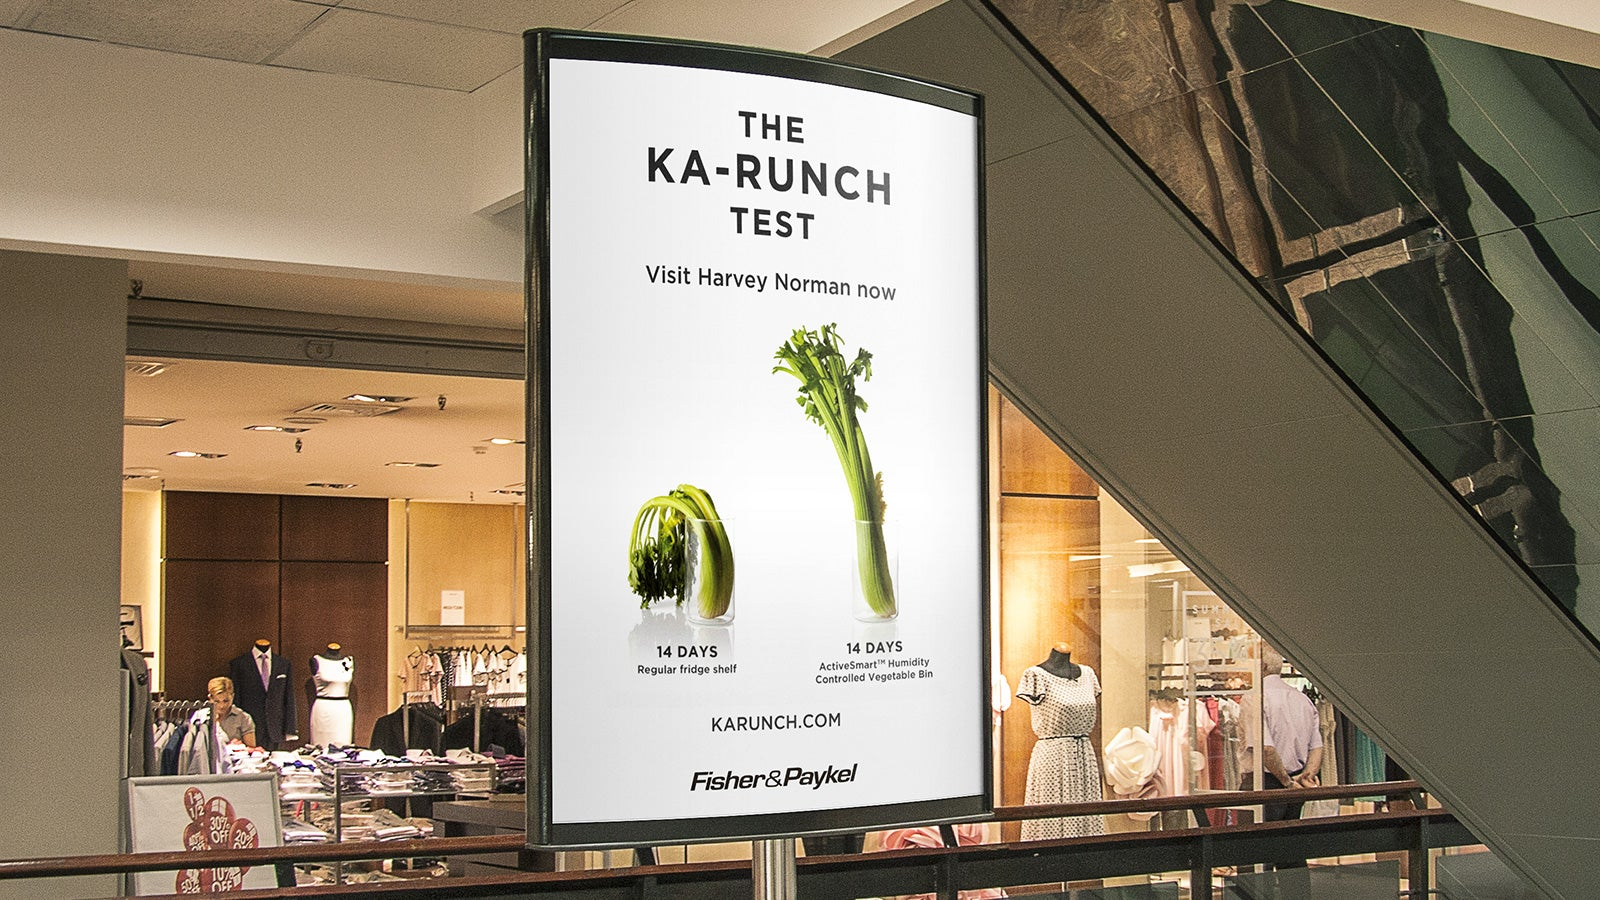 Fisher & Paykel | Ka-Runch Test marketing poster in shopping centre | Devotion